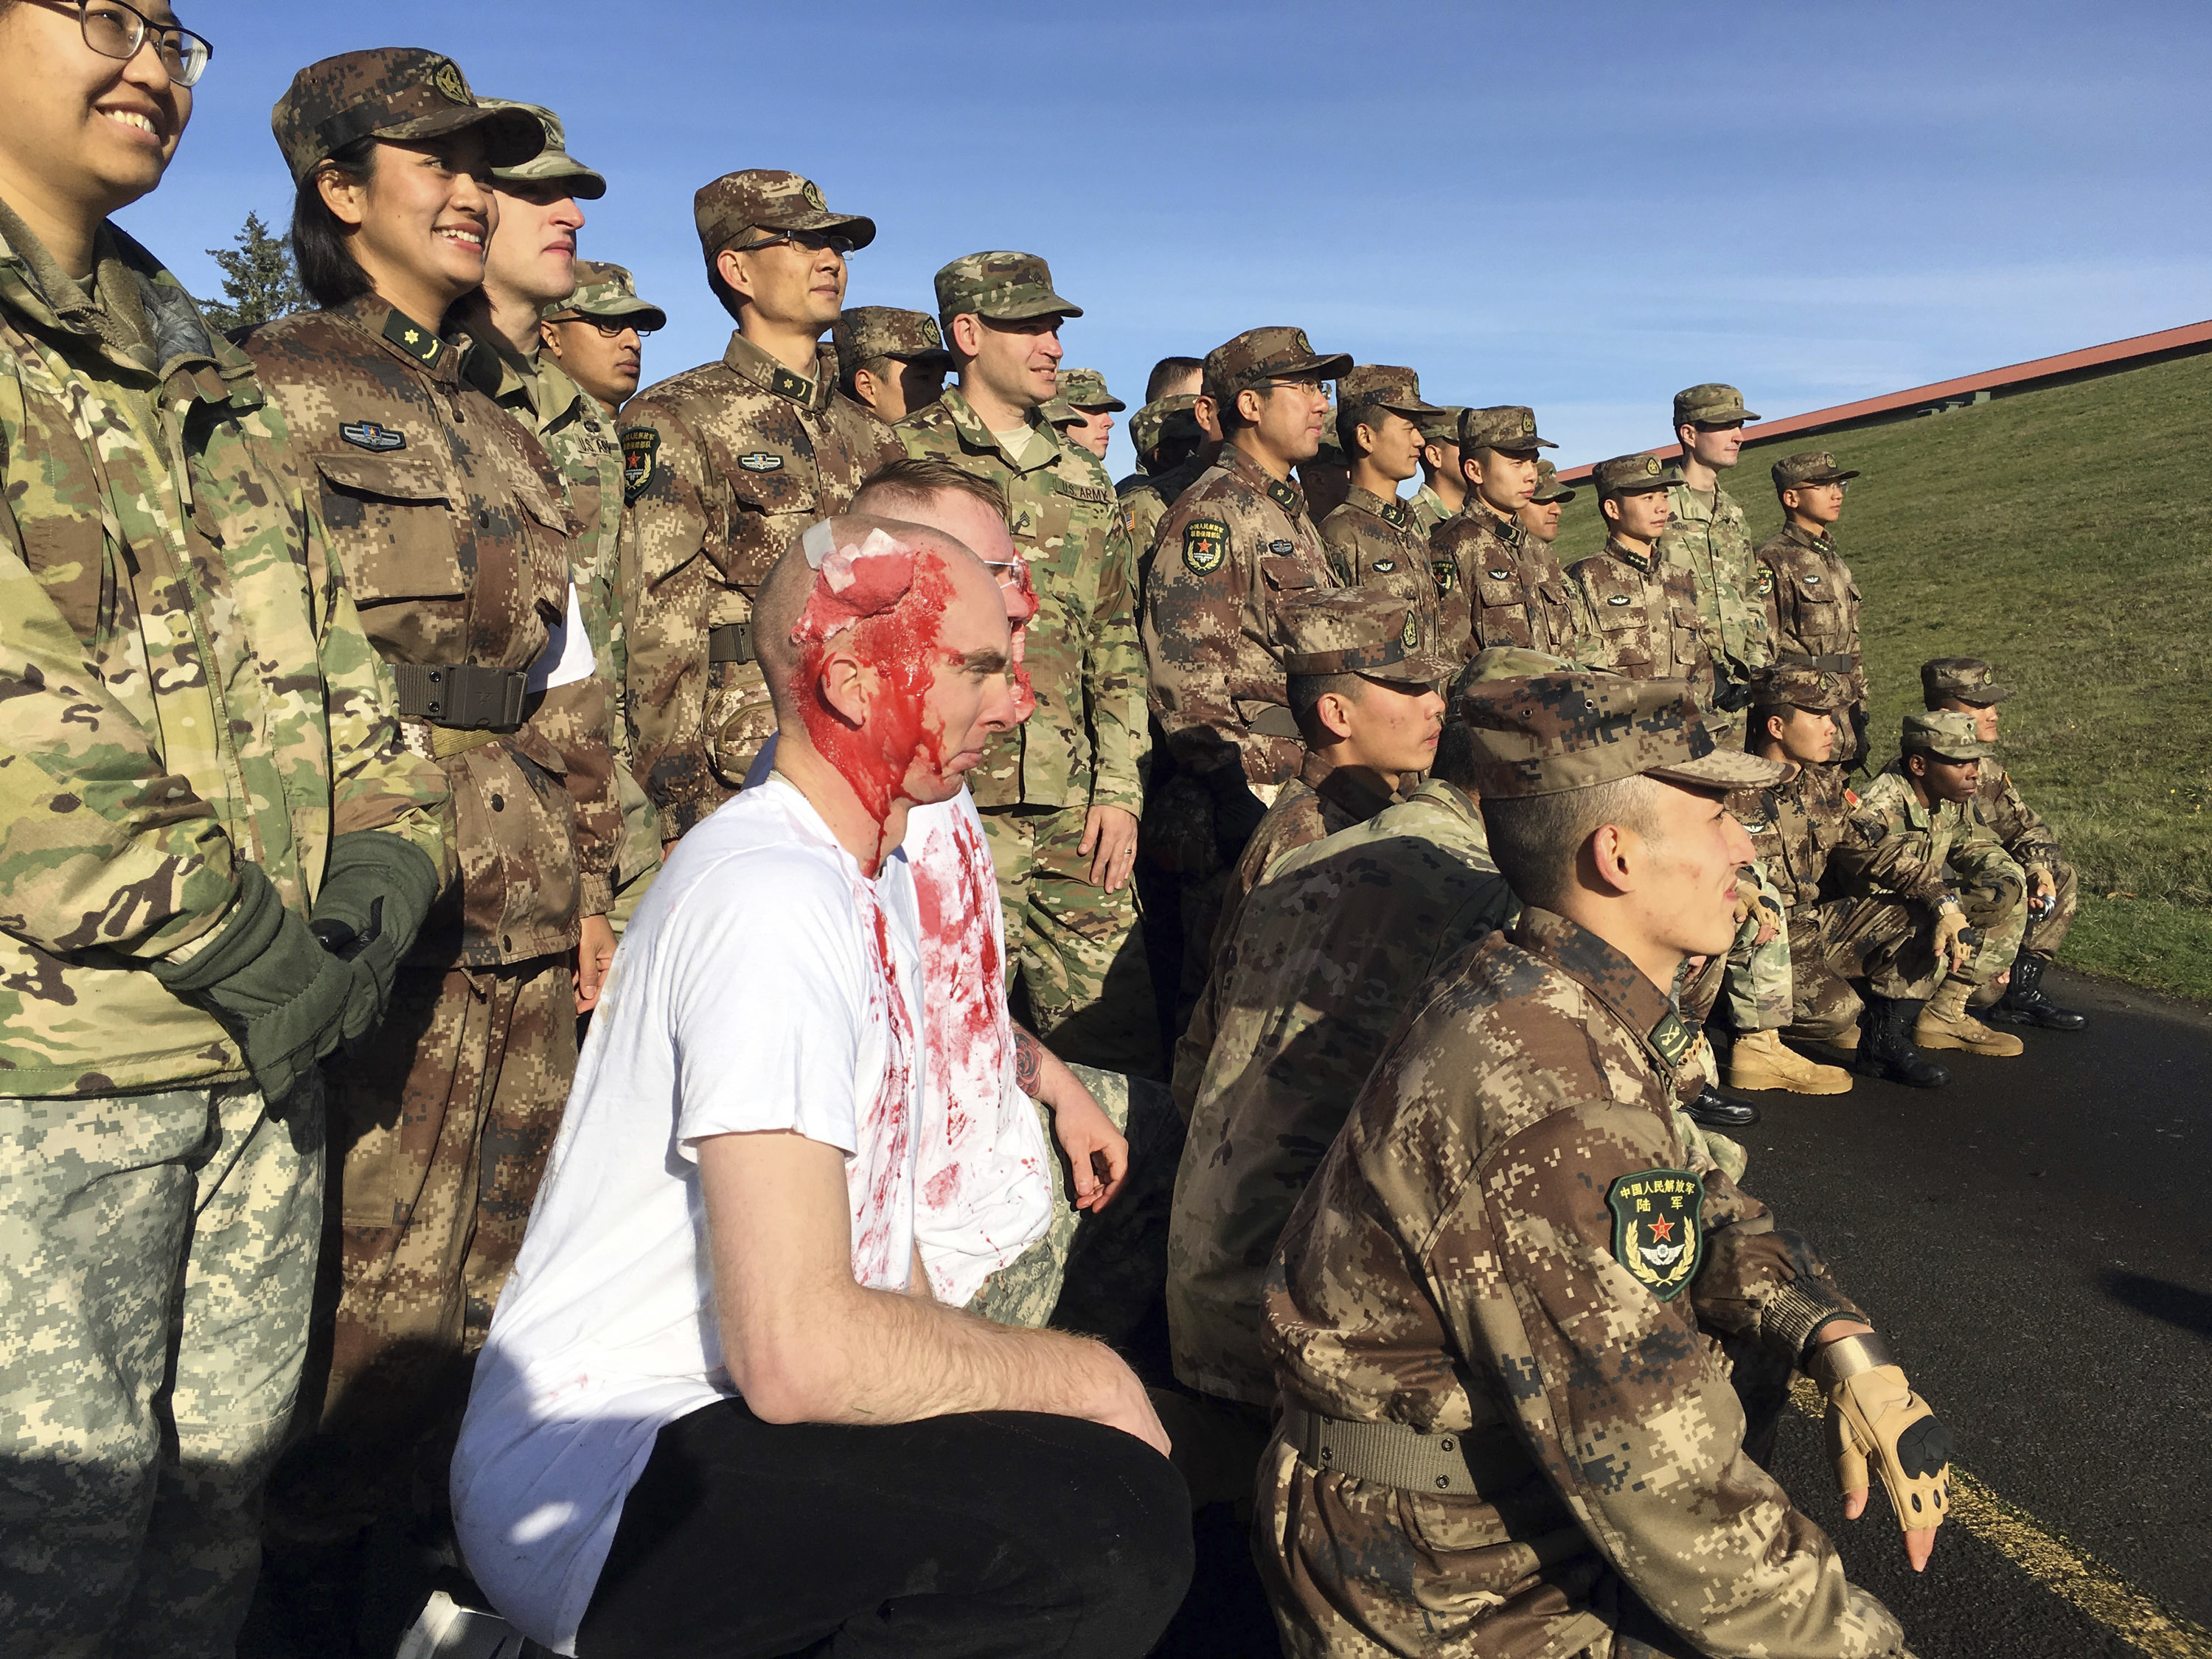 Soldiers from the U.S. and China pause during a joint disaster-response drill at Camp Rilea Armed Forces Training Center near Warrenton, Ore. on Nov. 18. It was only a drill, but roughly 100 soldiers from China and the U.S. and their top commanders are ready to use what they learned in a real disaster. (Andrew Selsky/AP Photo)